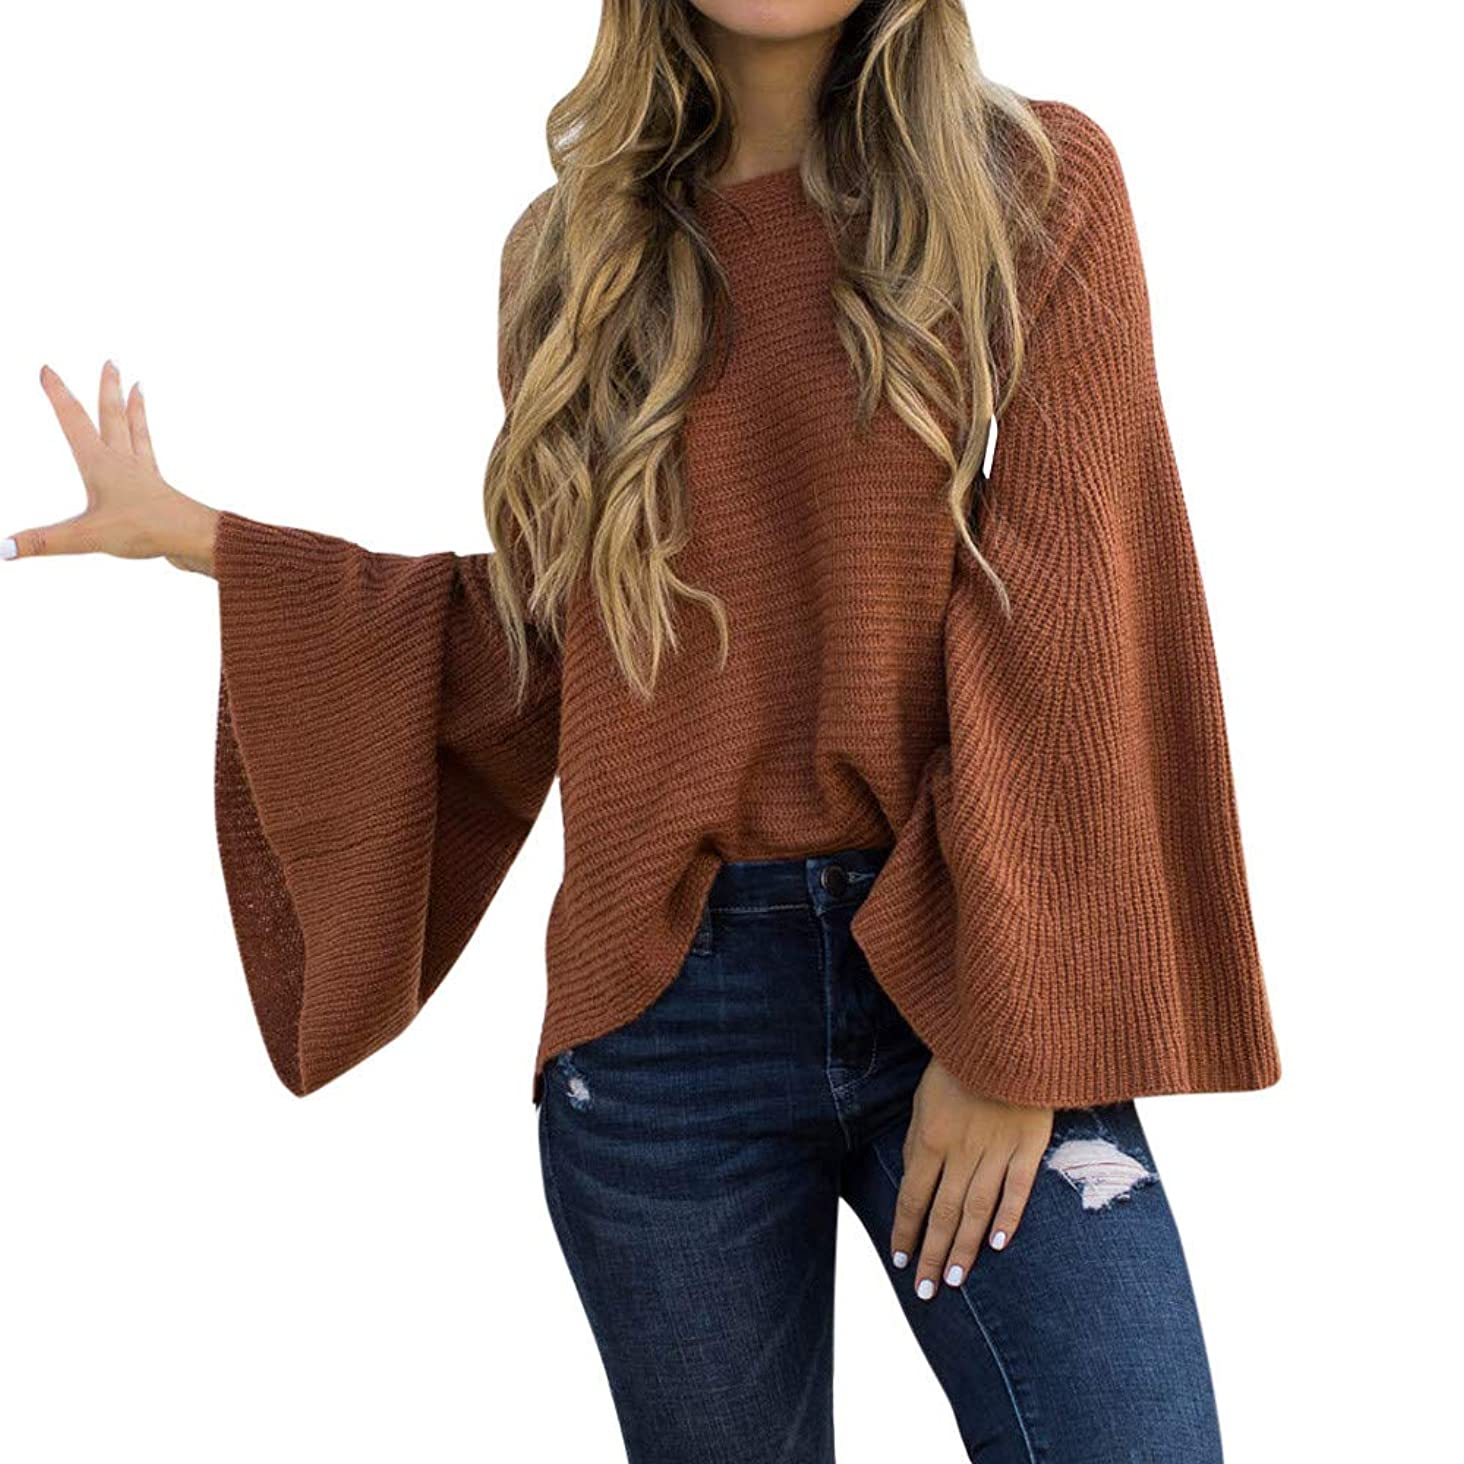 Franterd Sexy Thin Plus Size Early Autumn Sweater Women Loose Long Flare Sleeve Knitted Thin Jumper Pullover Blouse